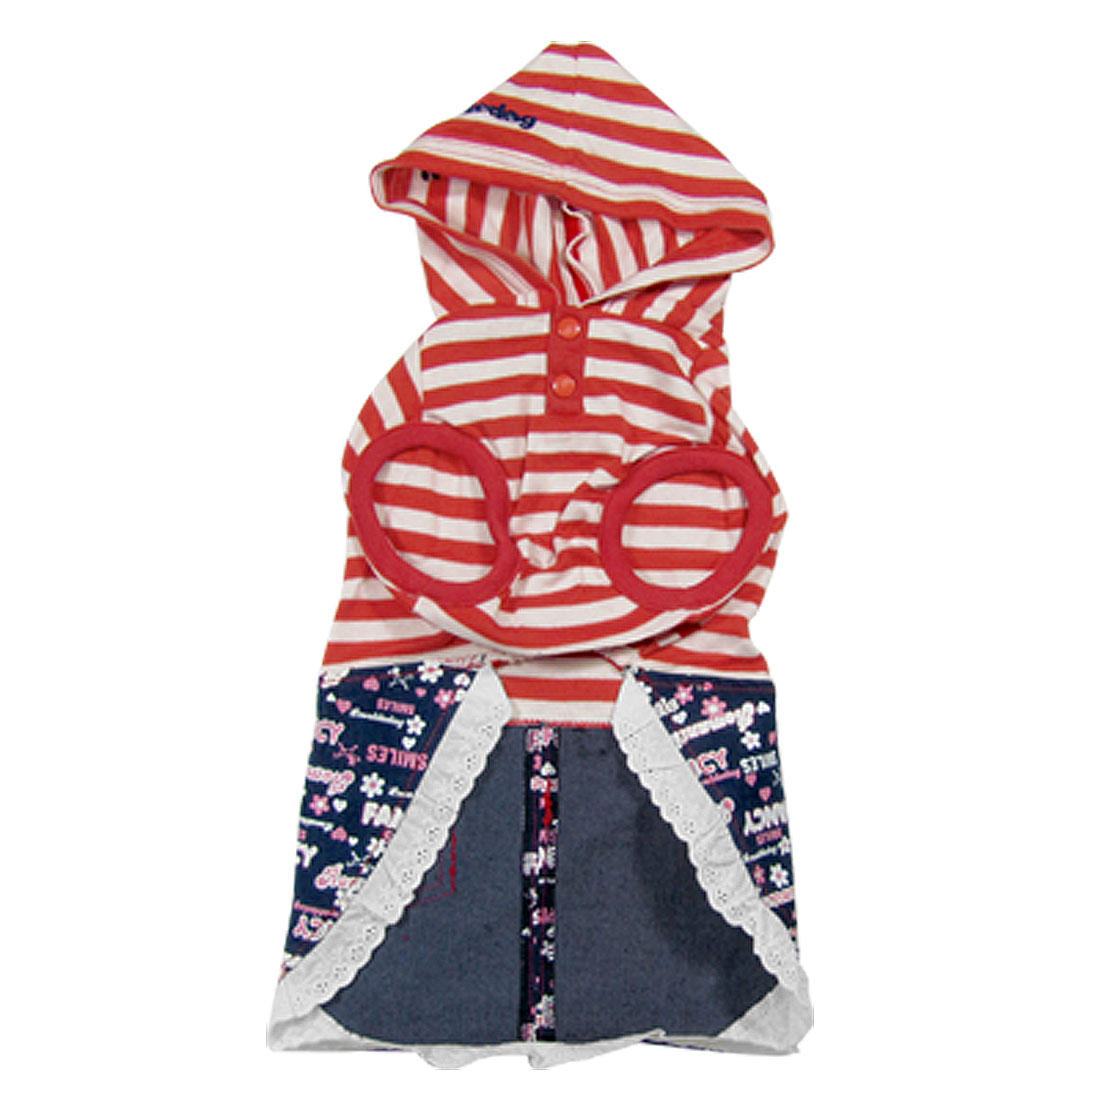 Size L Summer Red Stripe Pet Dog Apparel Hooded Shirts Jean Skirts Dress